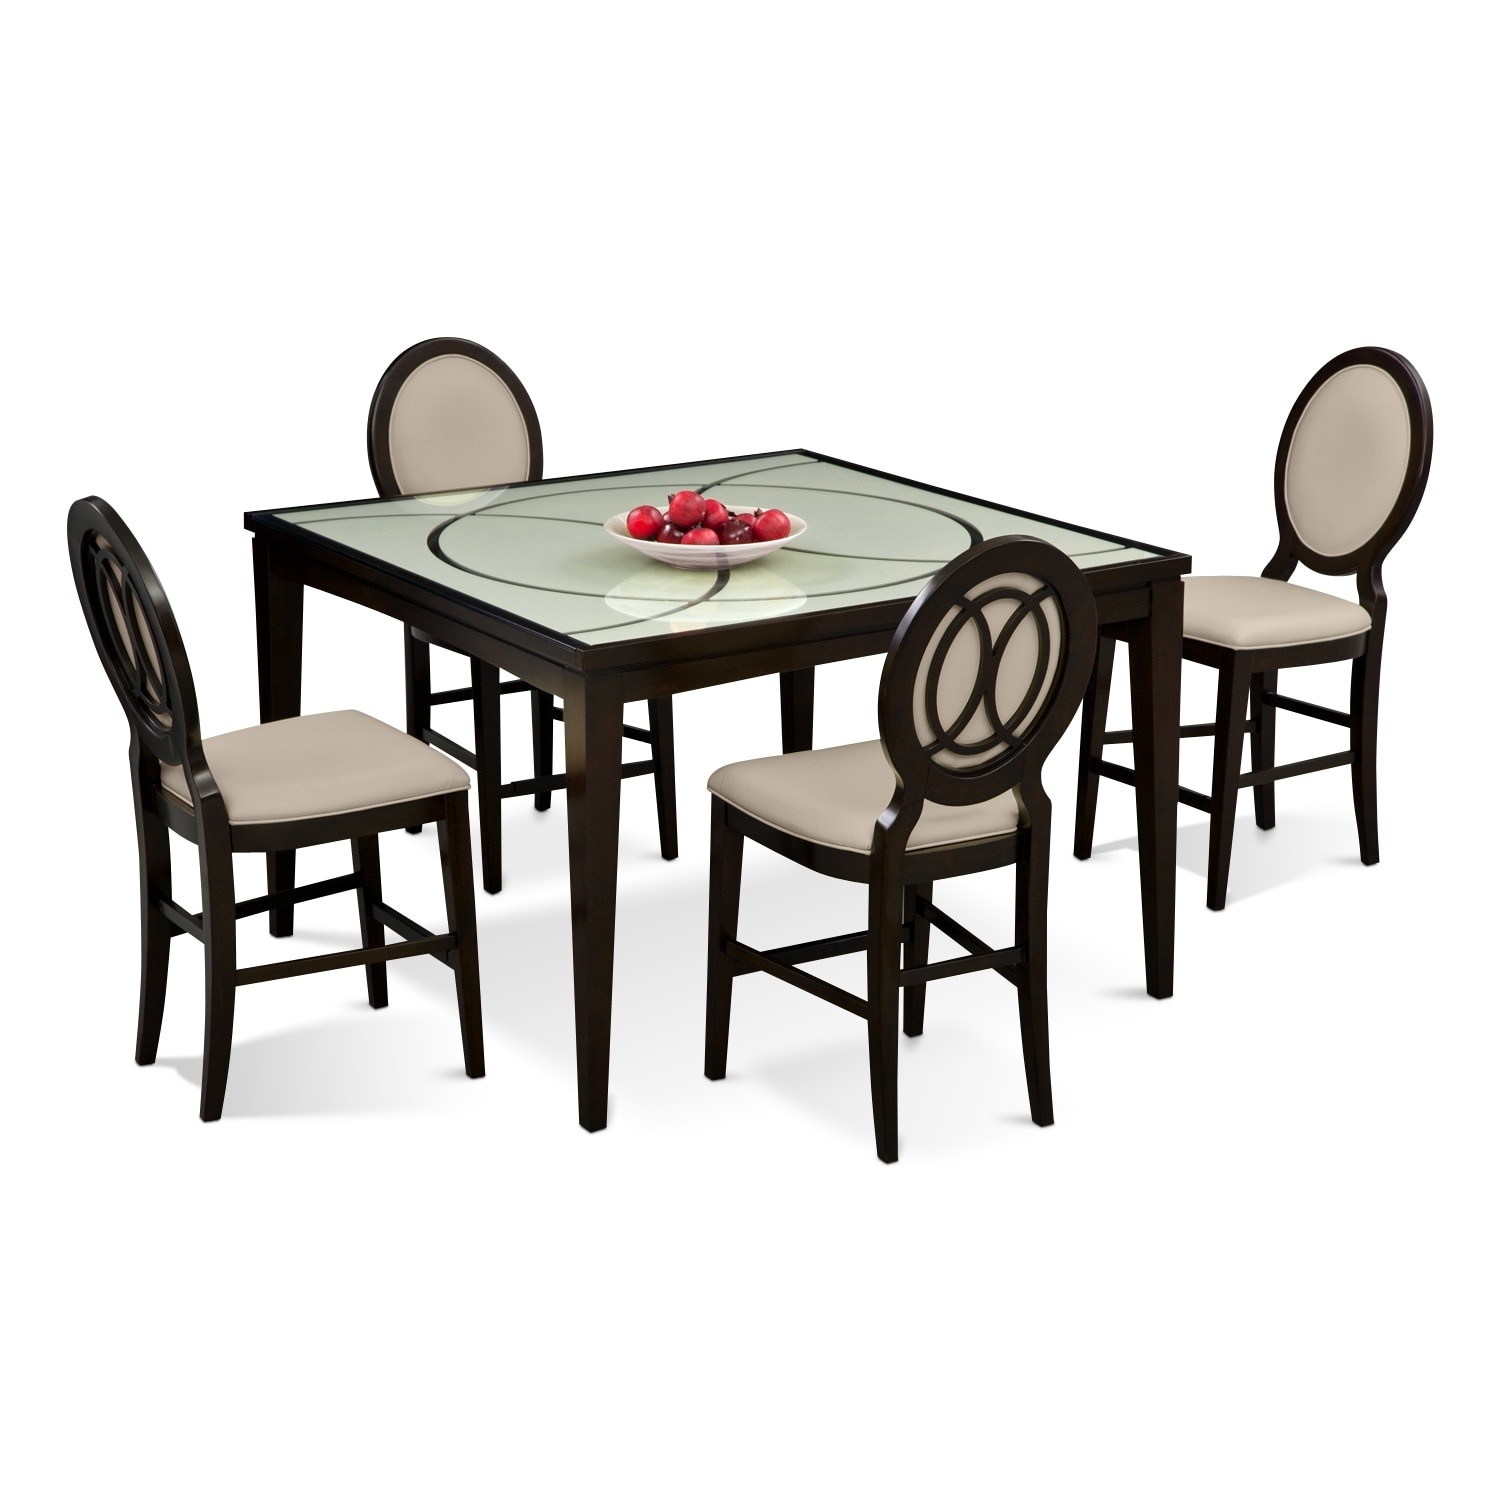 Value City Dining Room Furniture: Cosmo Counter-Height Table And 4 Chairs - Merlot